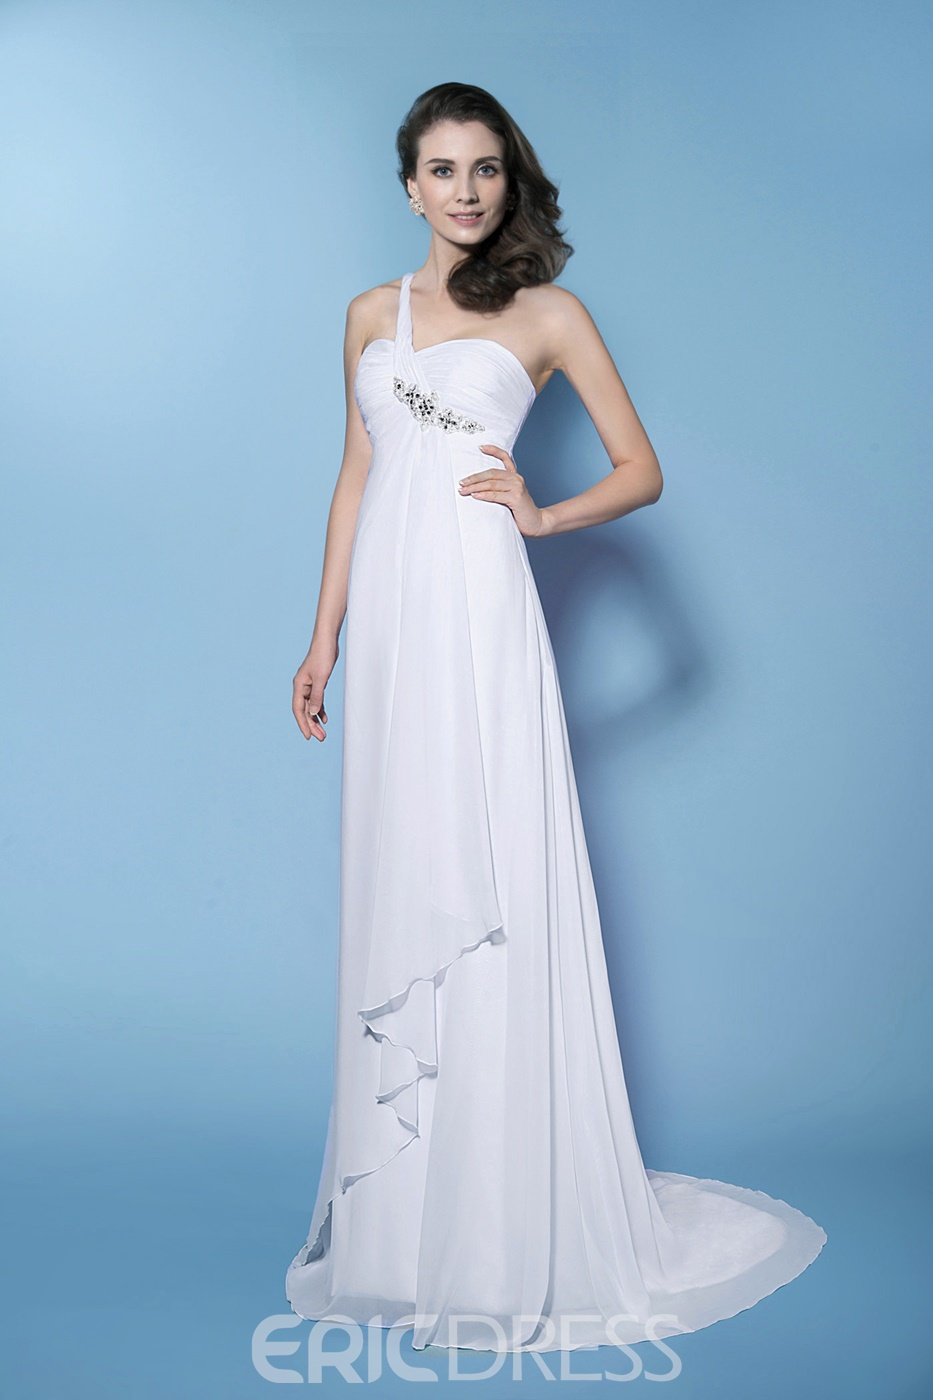 Fascinating Sheath/Column Empire Waistline One-Shouler Wedding Dress